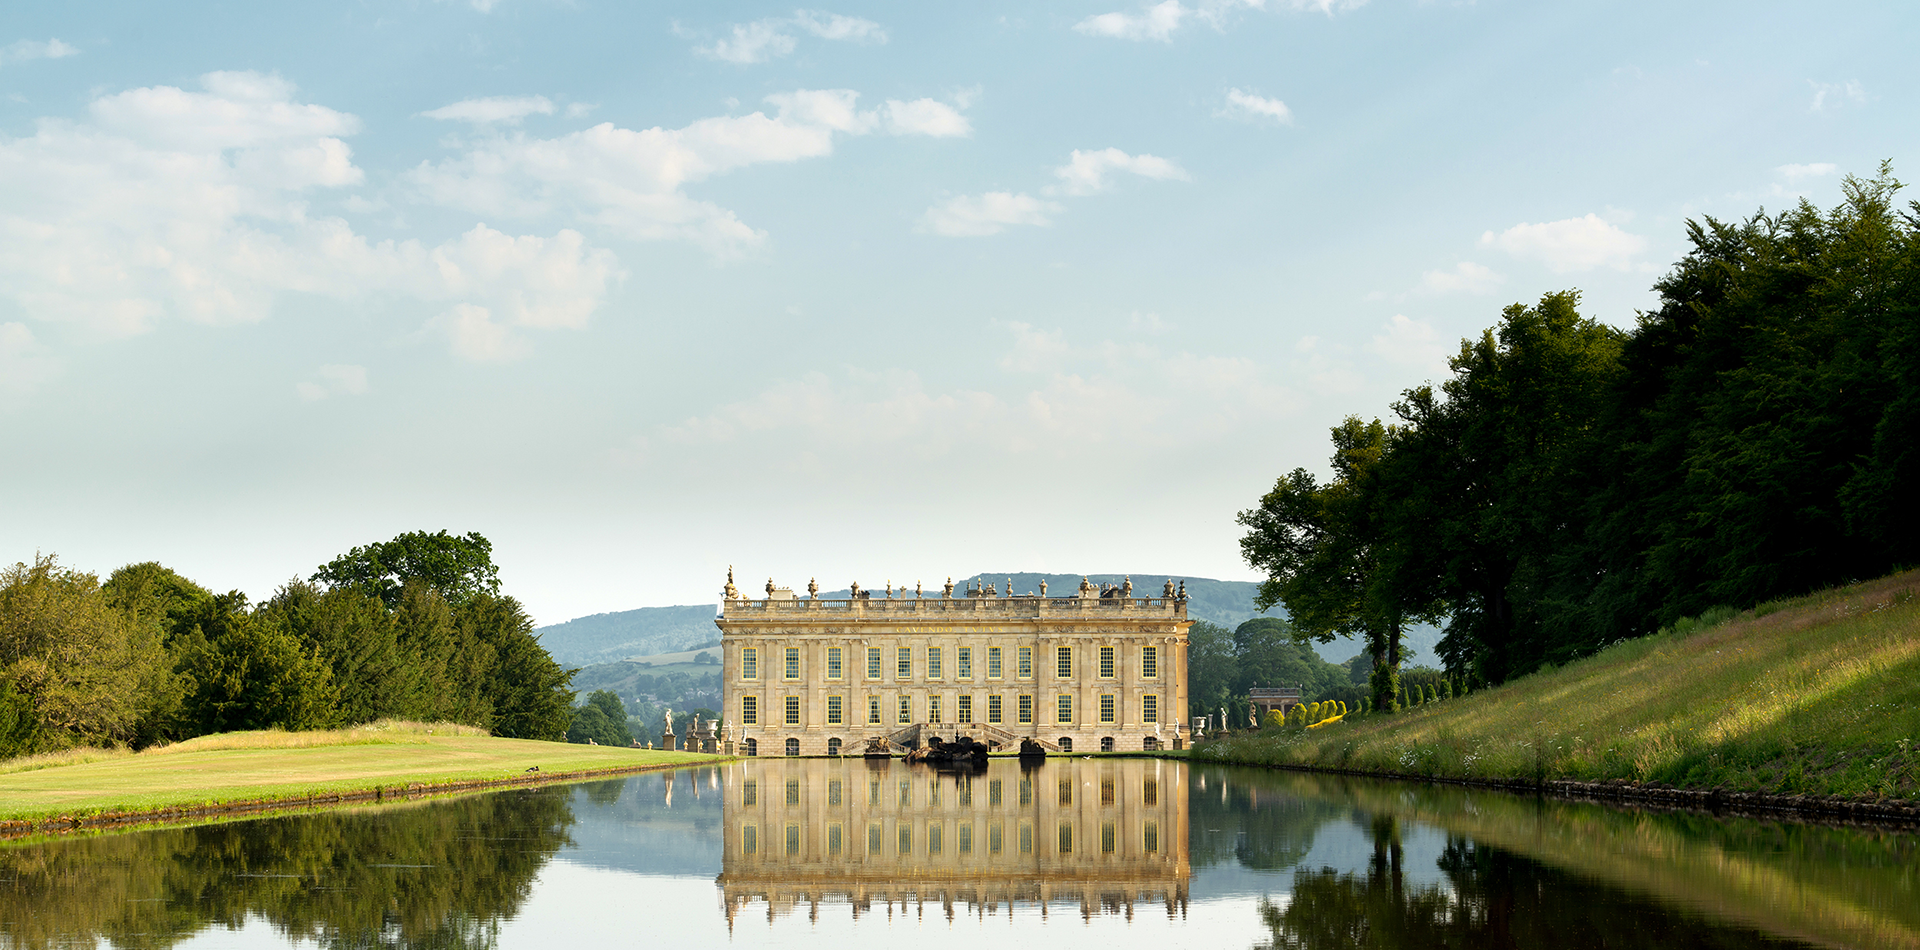 Stay in touch with Chatsworth